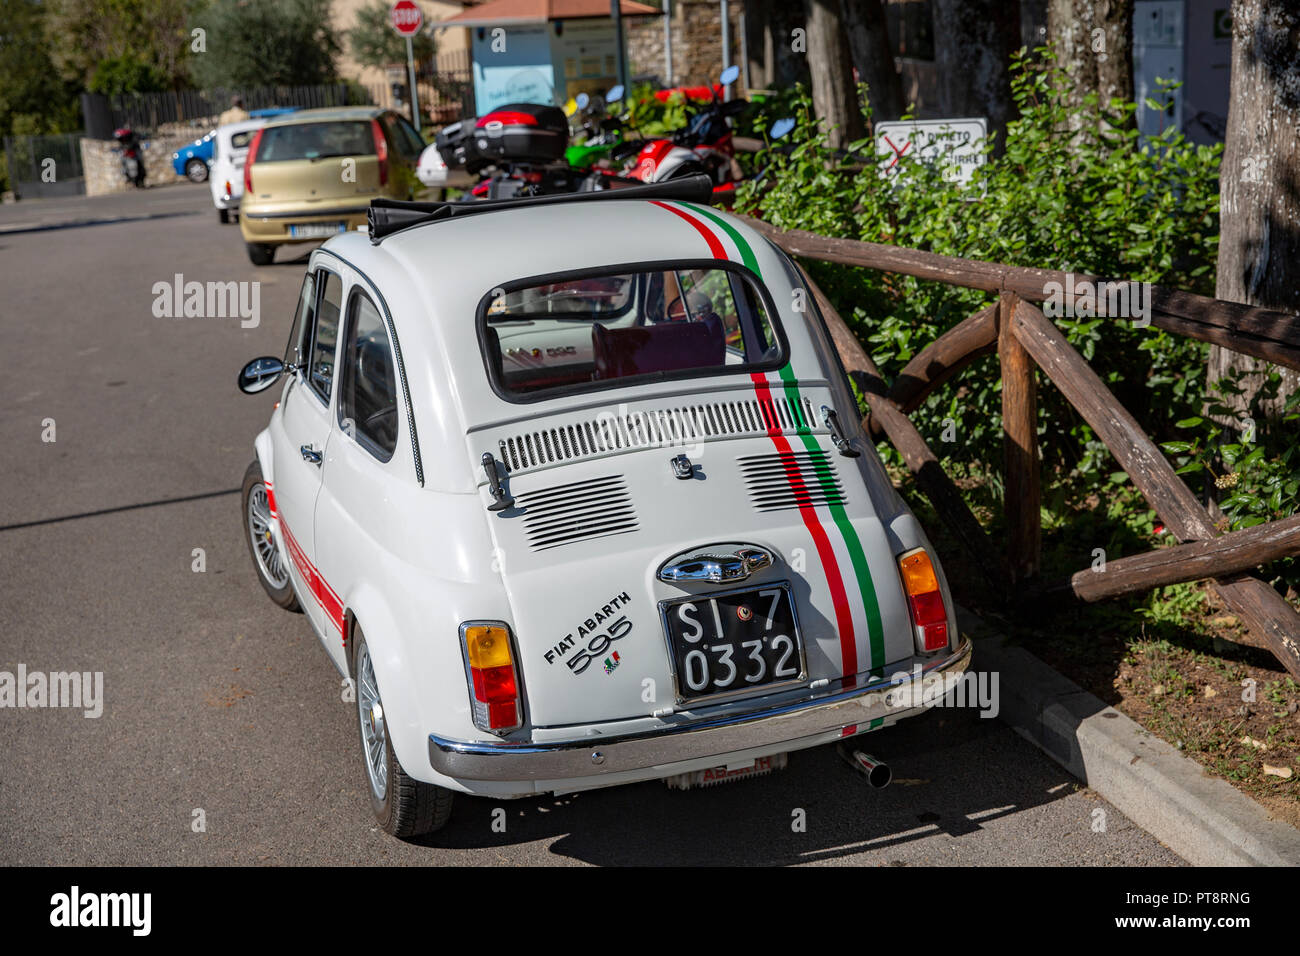 Fiat abarth 595 classic car in Tuscany,Italy - Stock Image